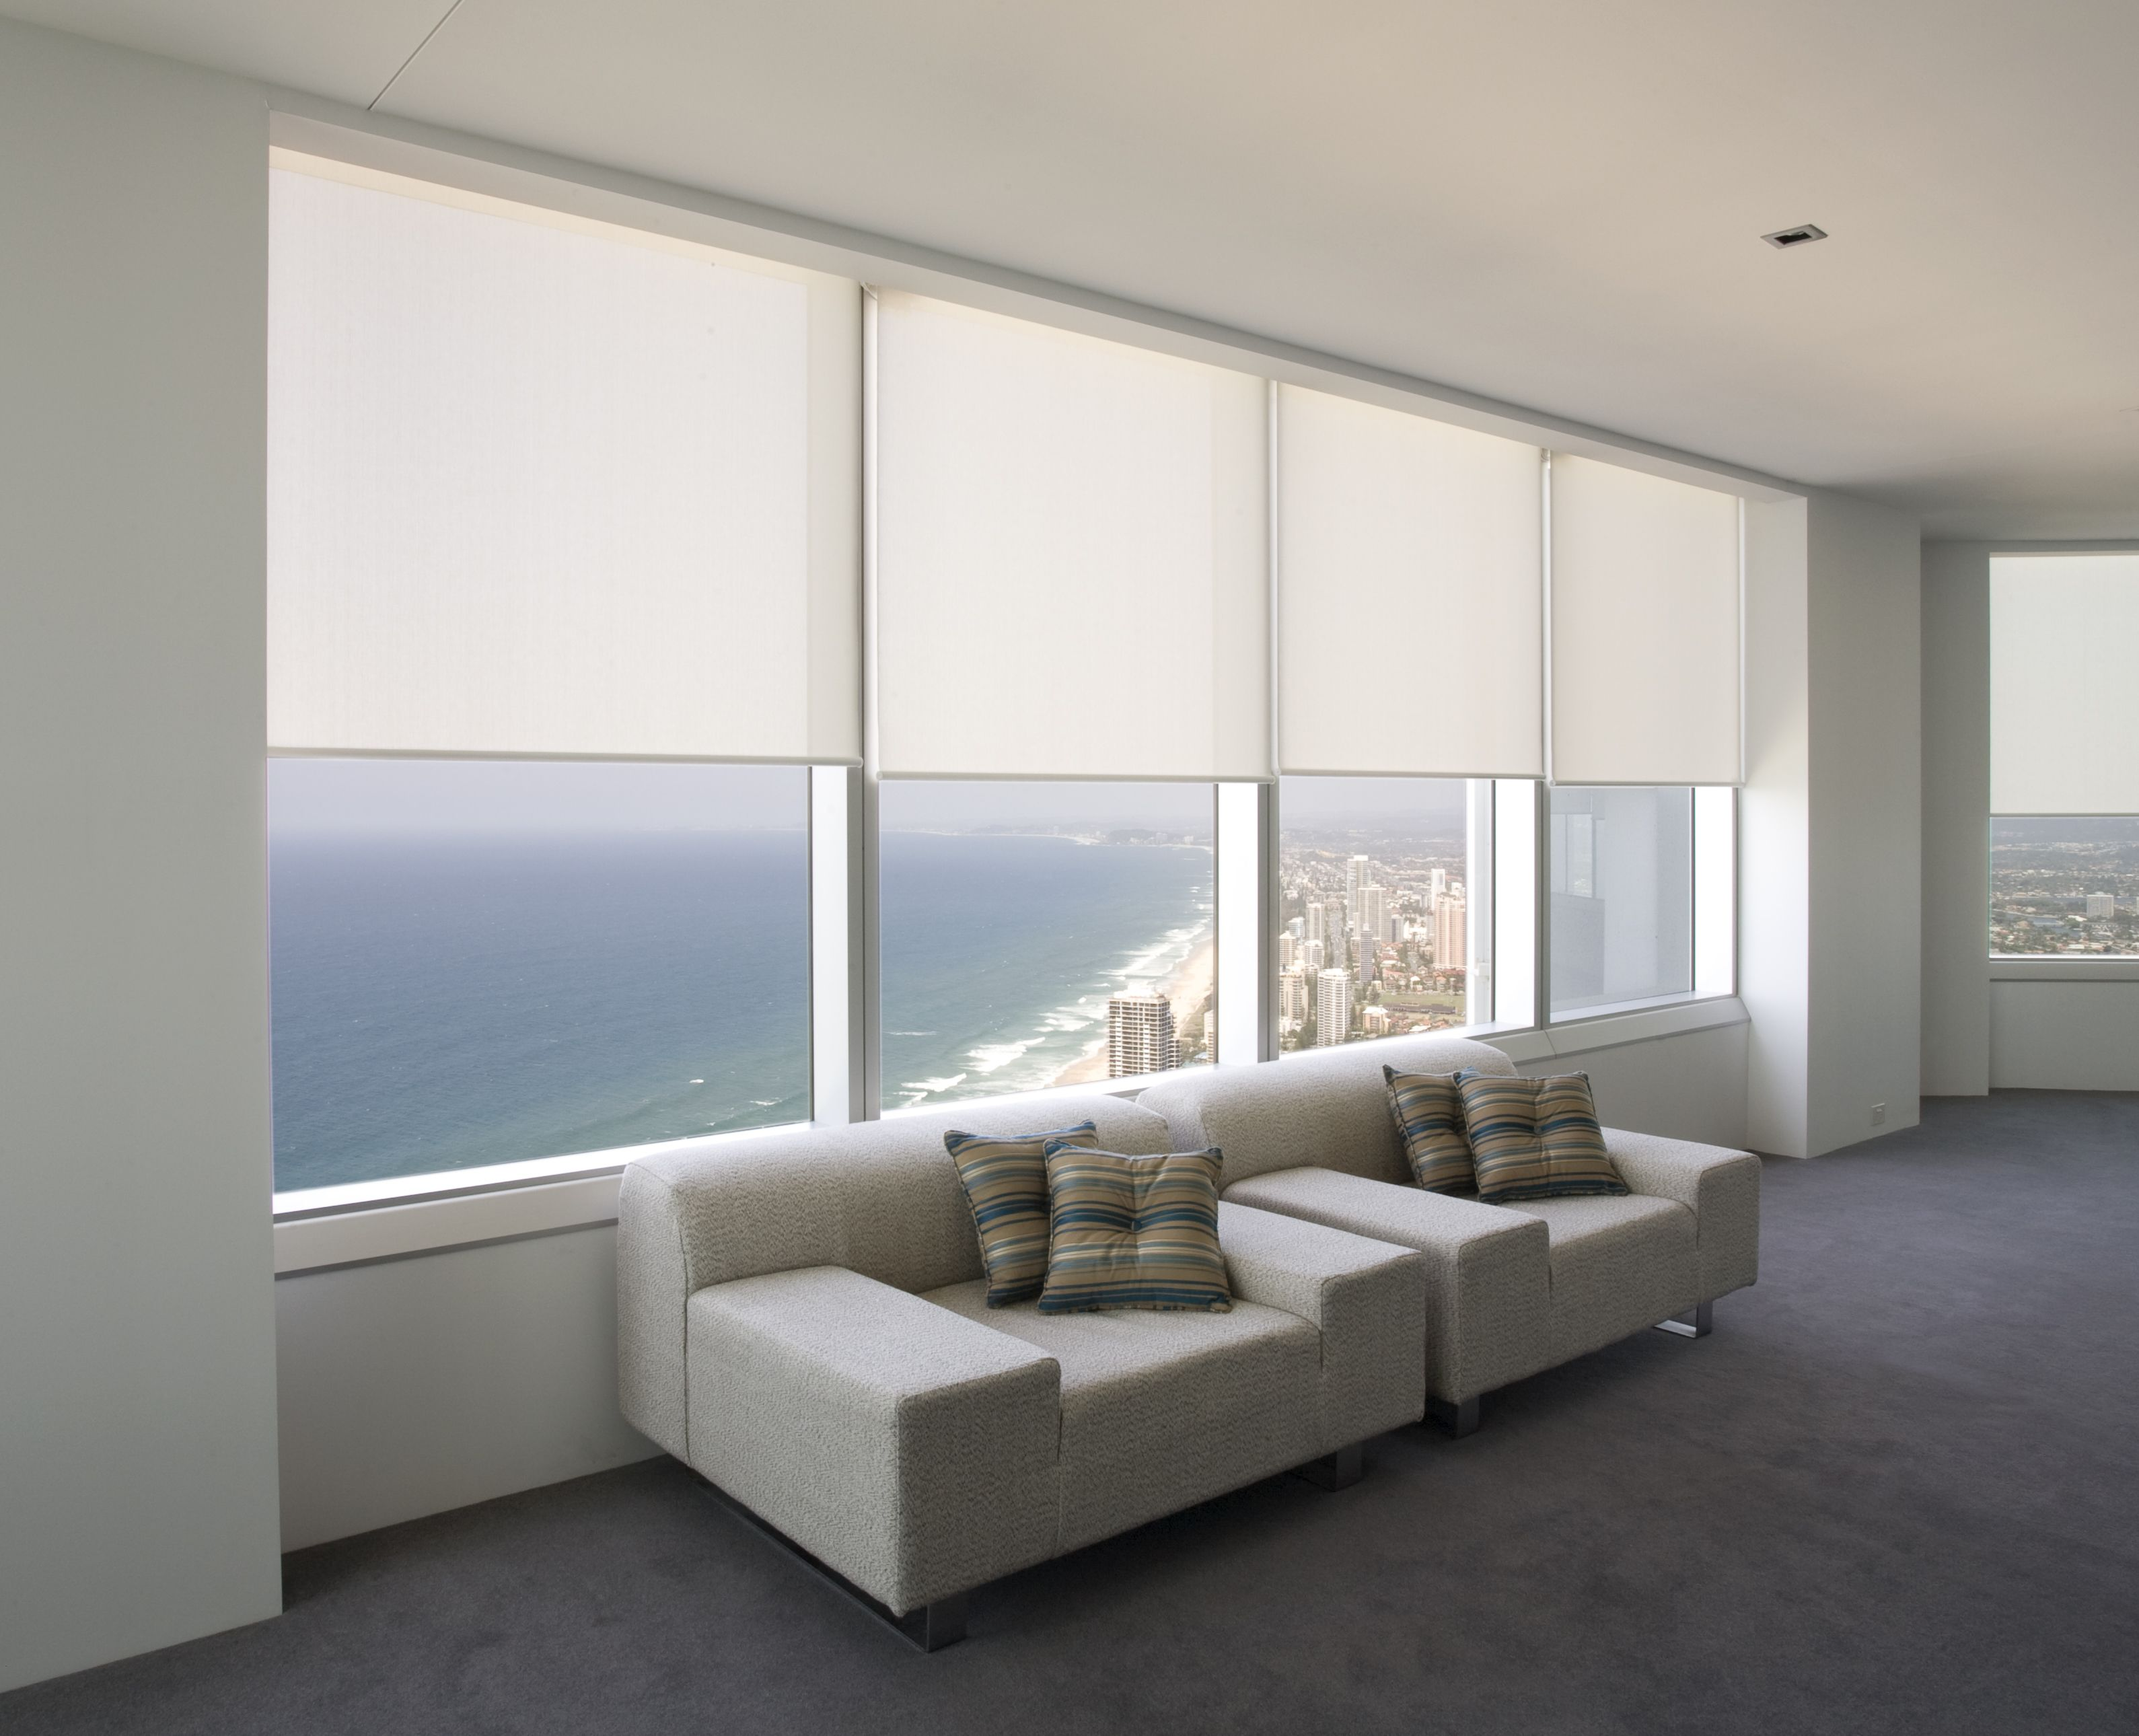 Roller Blinds Light Filtering  Boston #Blinds #Home #Decor